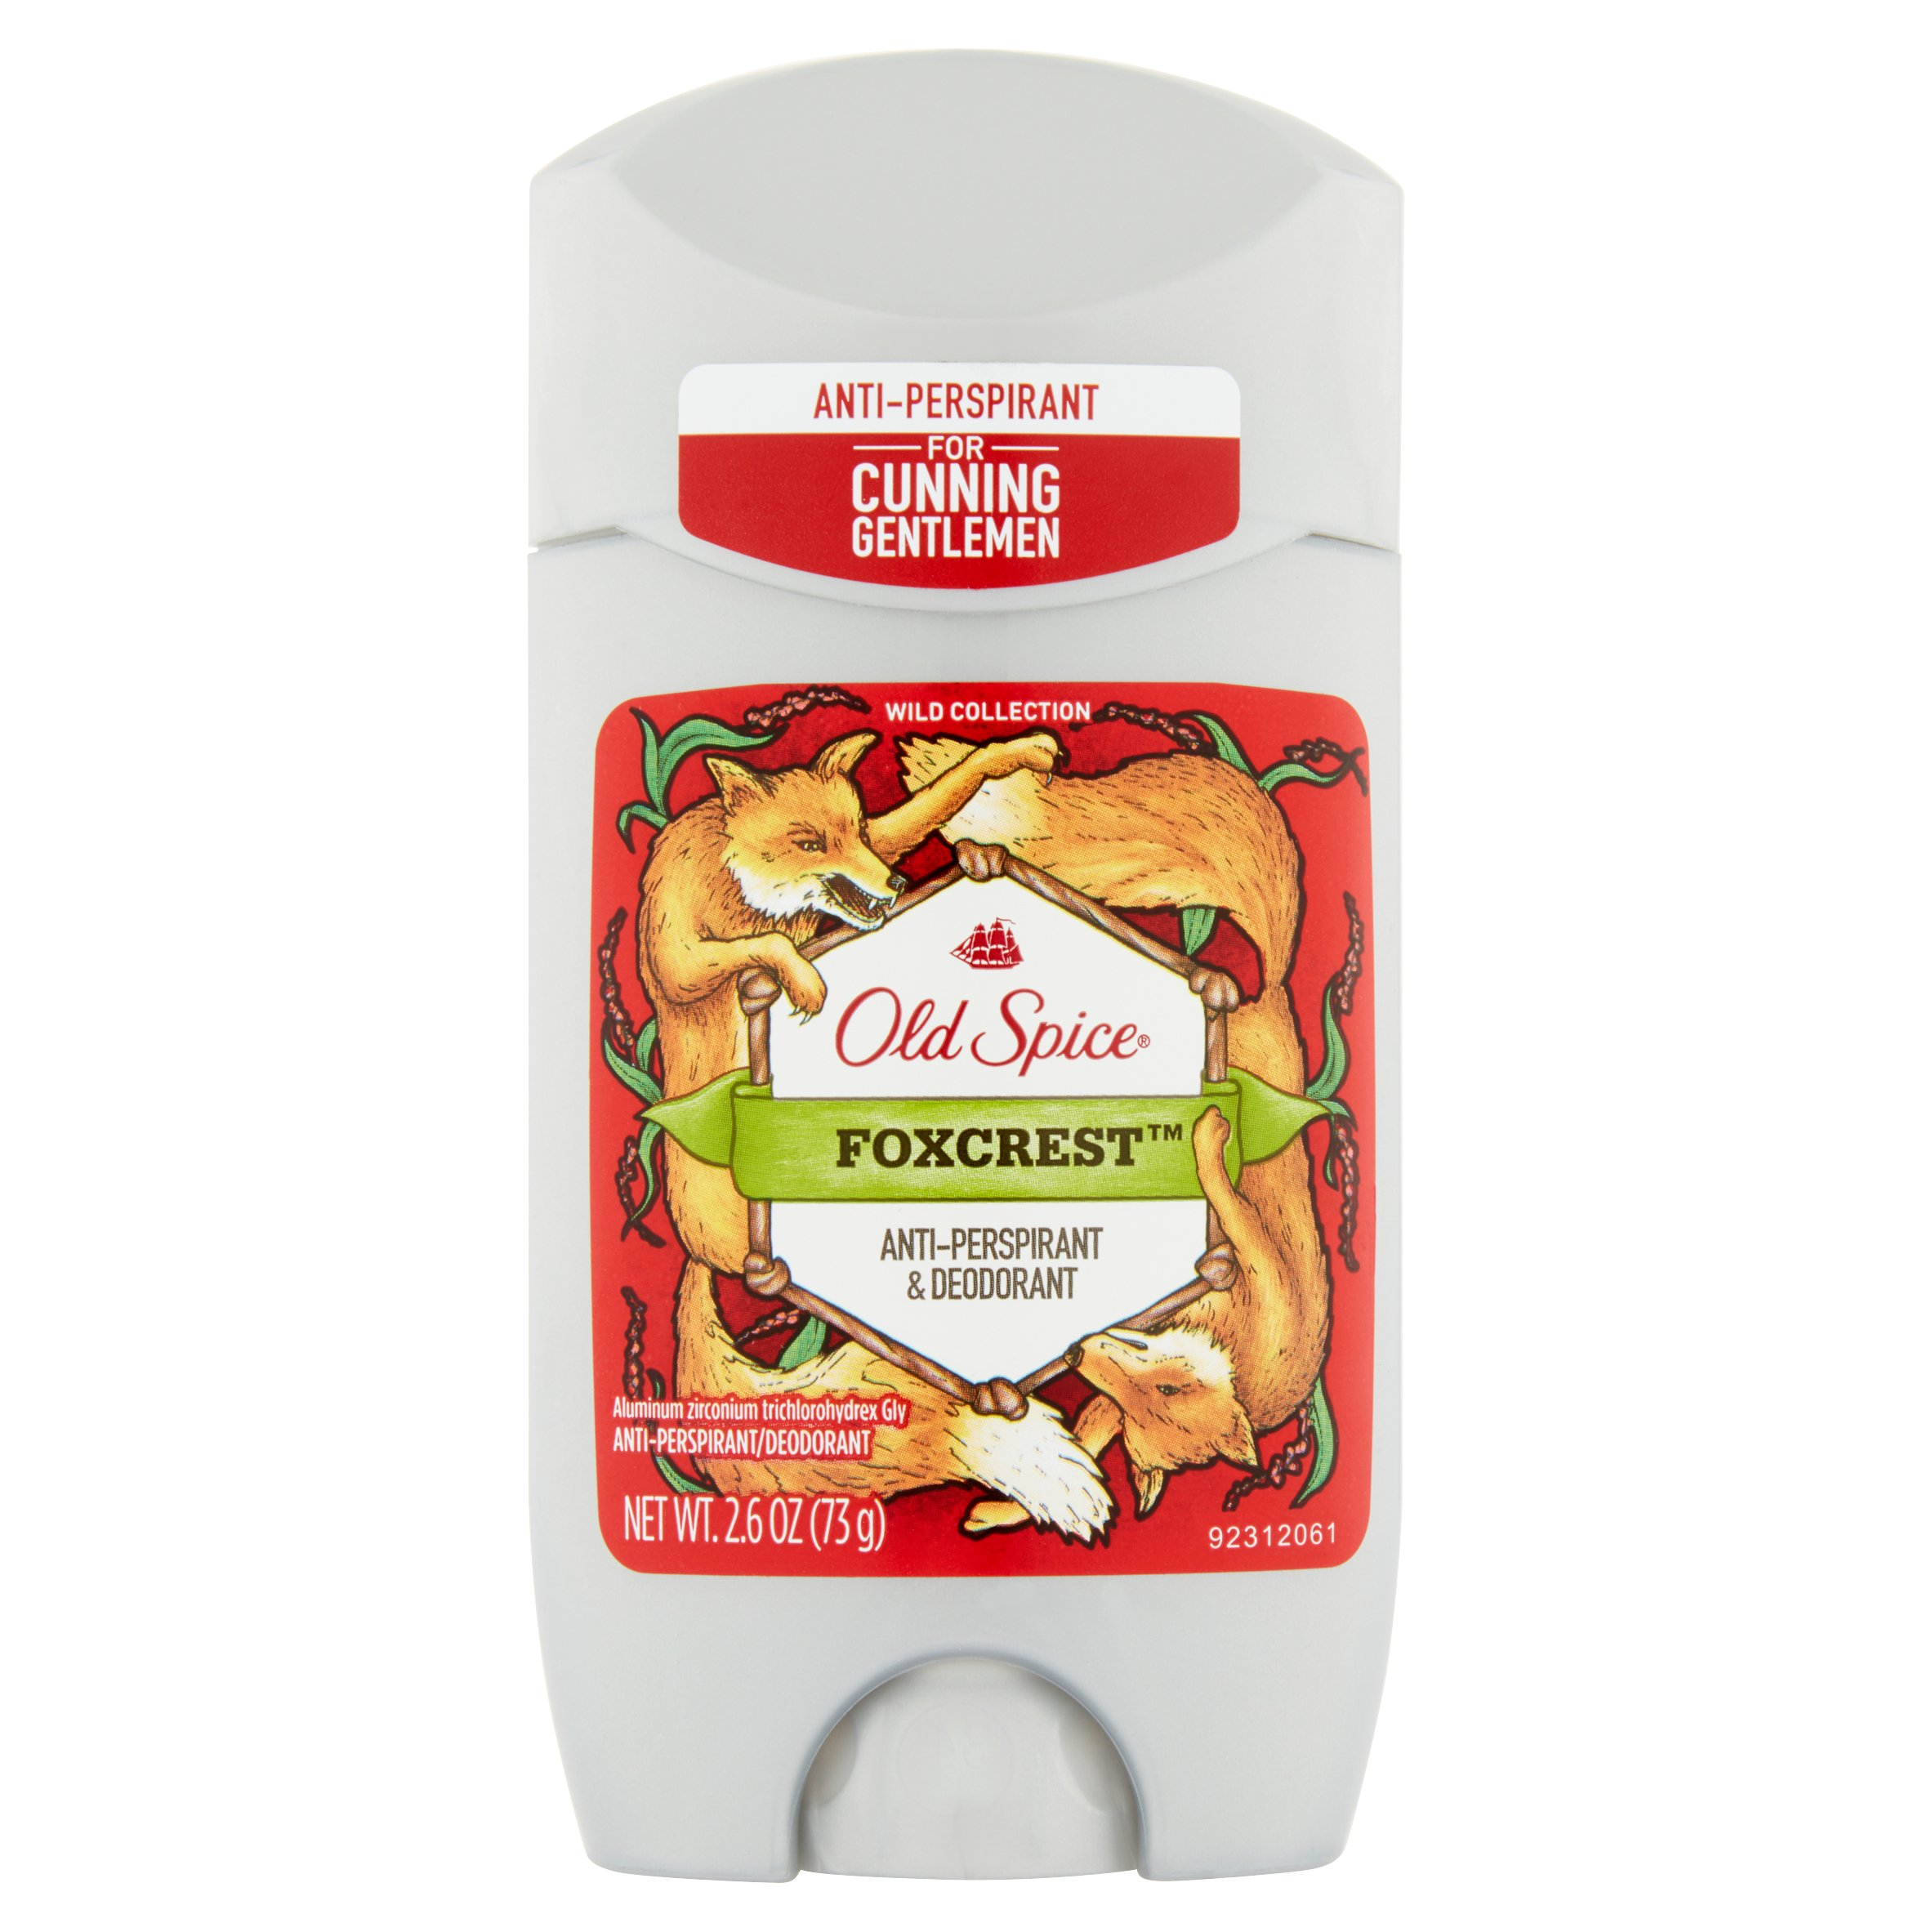 Old Spice Wild Collection Foxcrest Anti-Perspirant & Deodorant, 2.6 oz